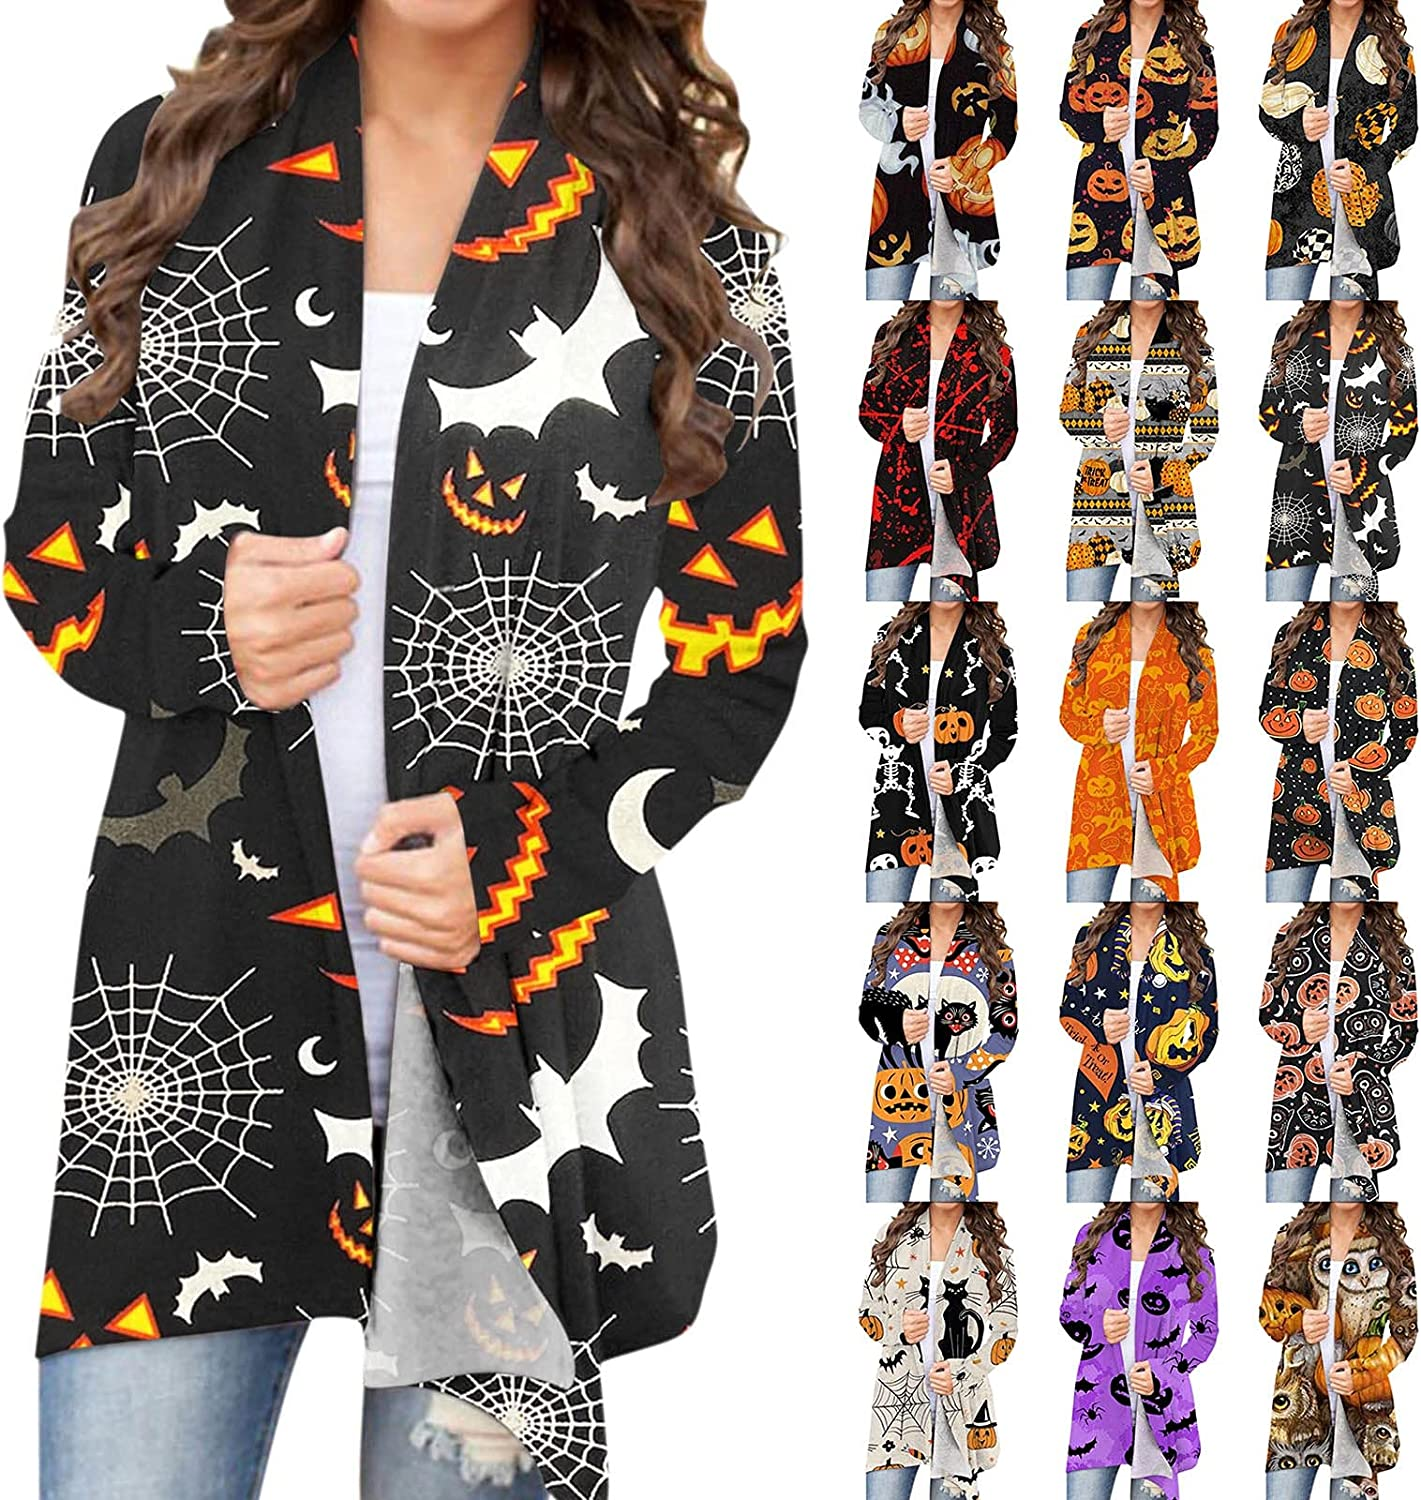 nunonette Open Front Cardigan for Women Long Sleeve Halloween Funny Cute Retro Pumpkin Letter Printed Knitted Sweater Jacket